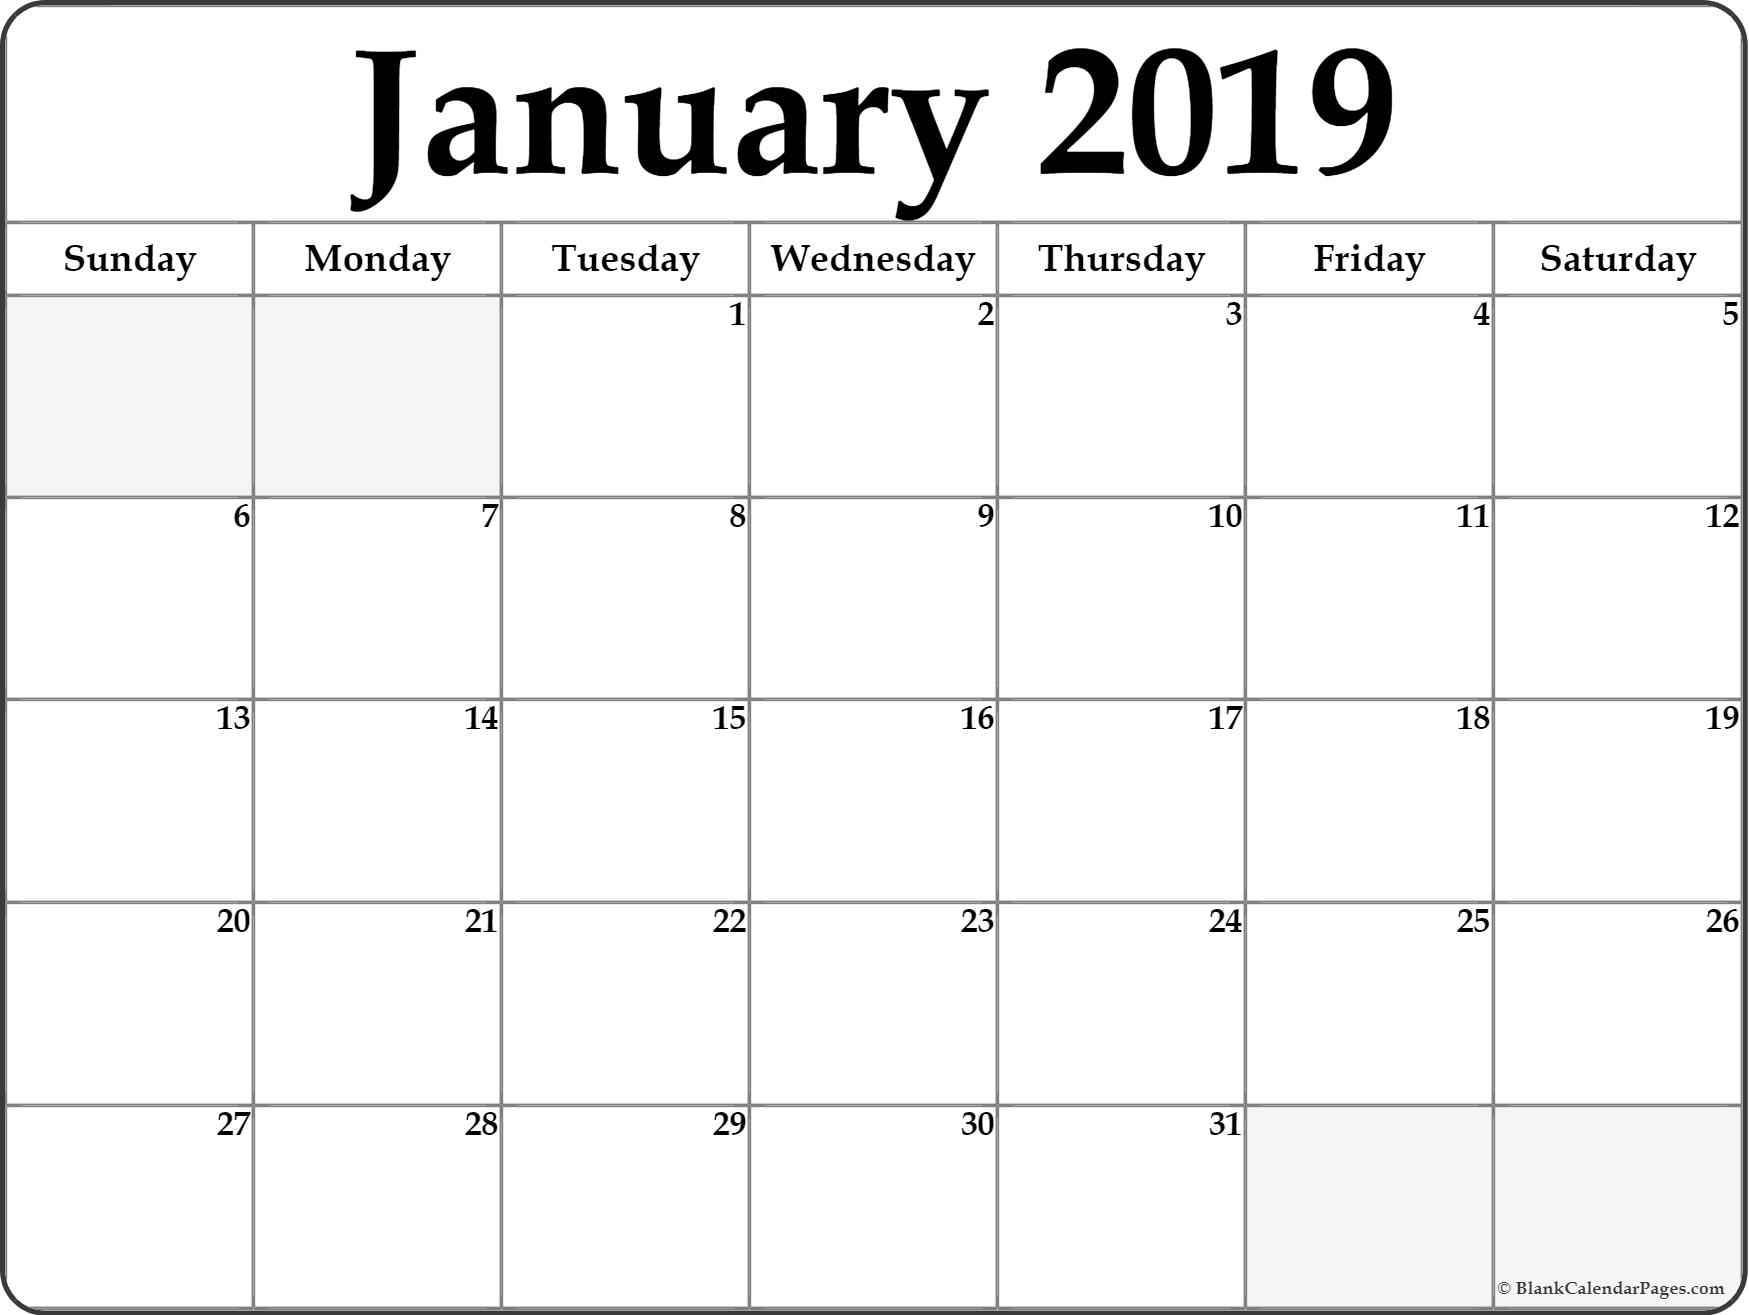 january 2019 free printable blank calendar collection January 2019 HD Calendar Wallpapers erdferdf